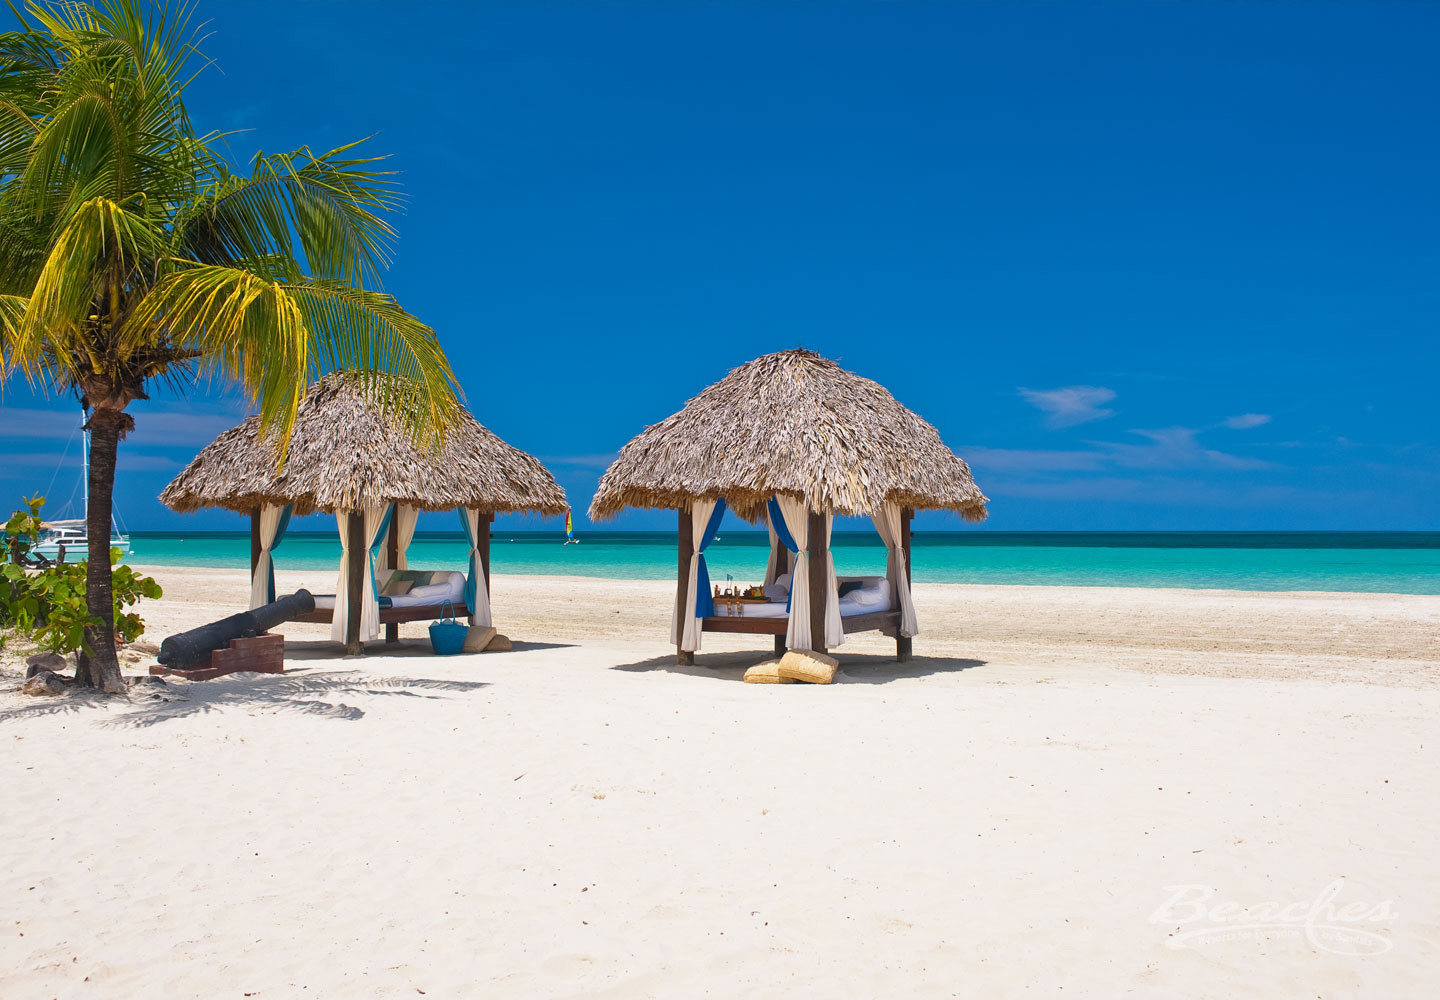 Travel Agency All-Inclusive Resort Beaches Negril 023